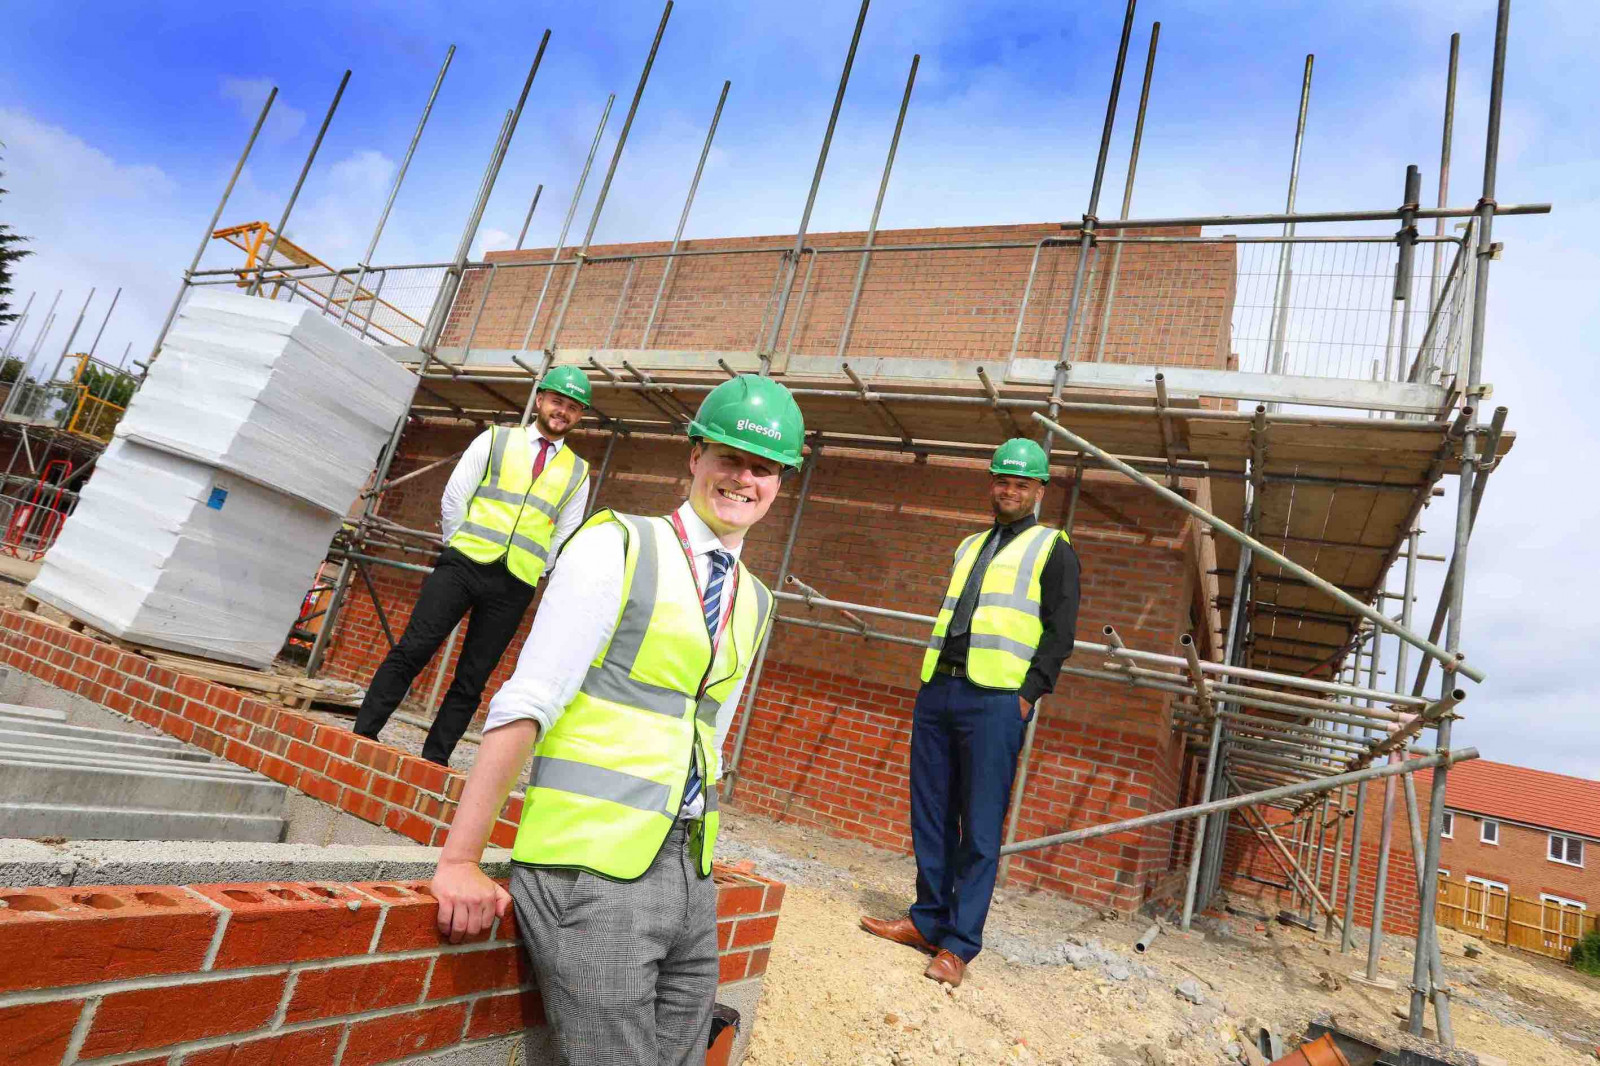 Apprentices build careers as safe as houses image